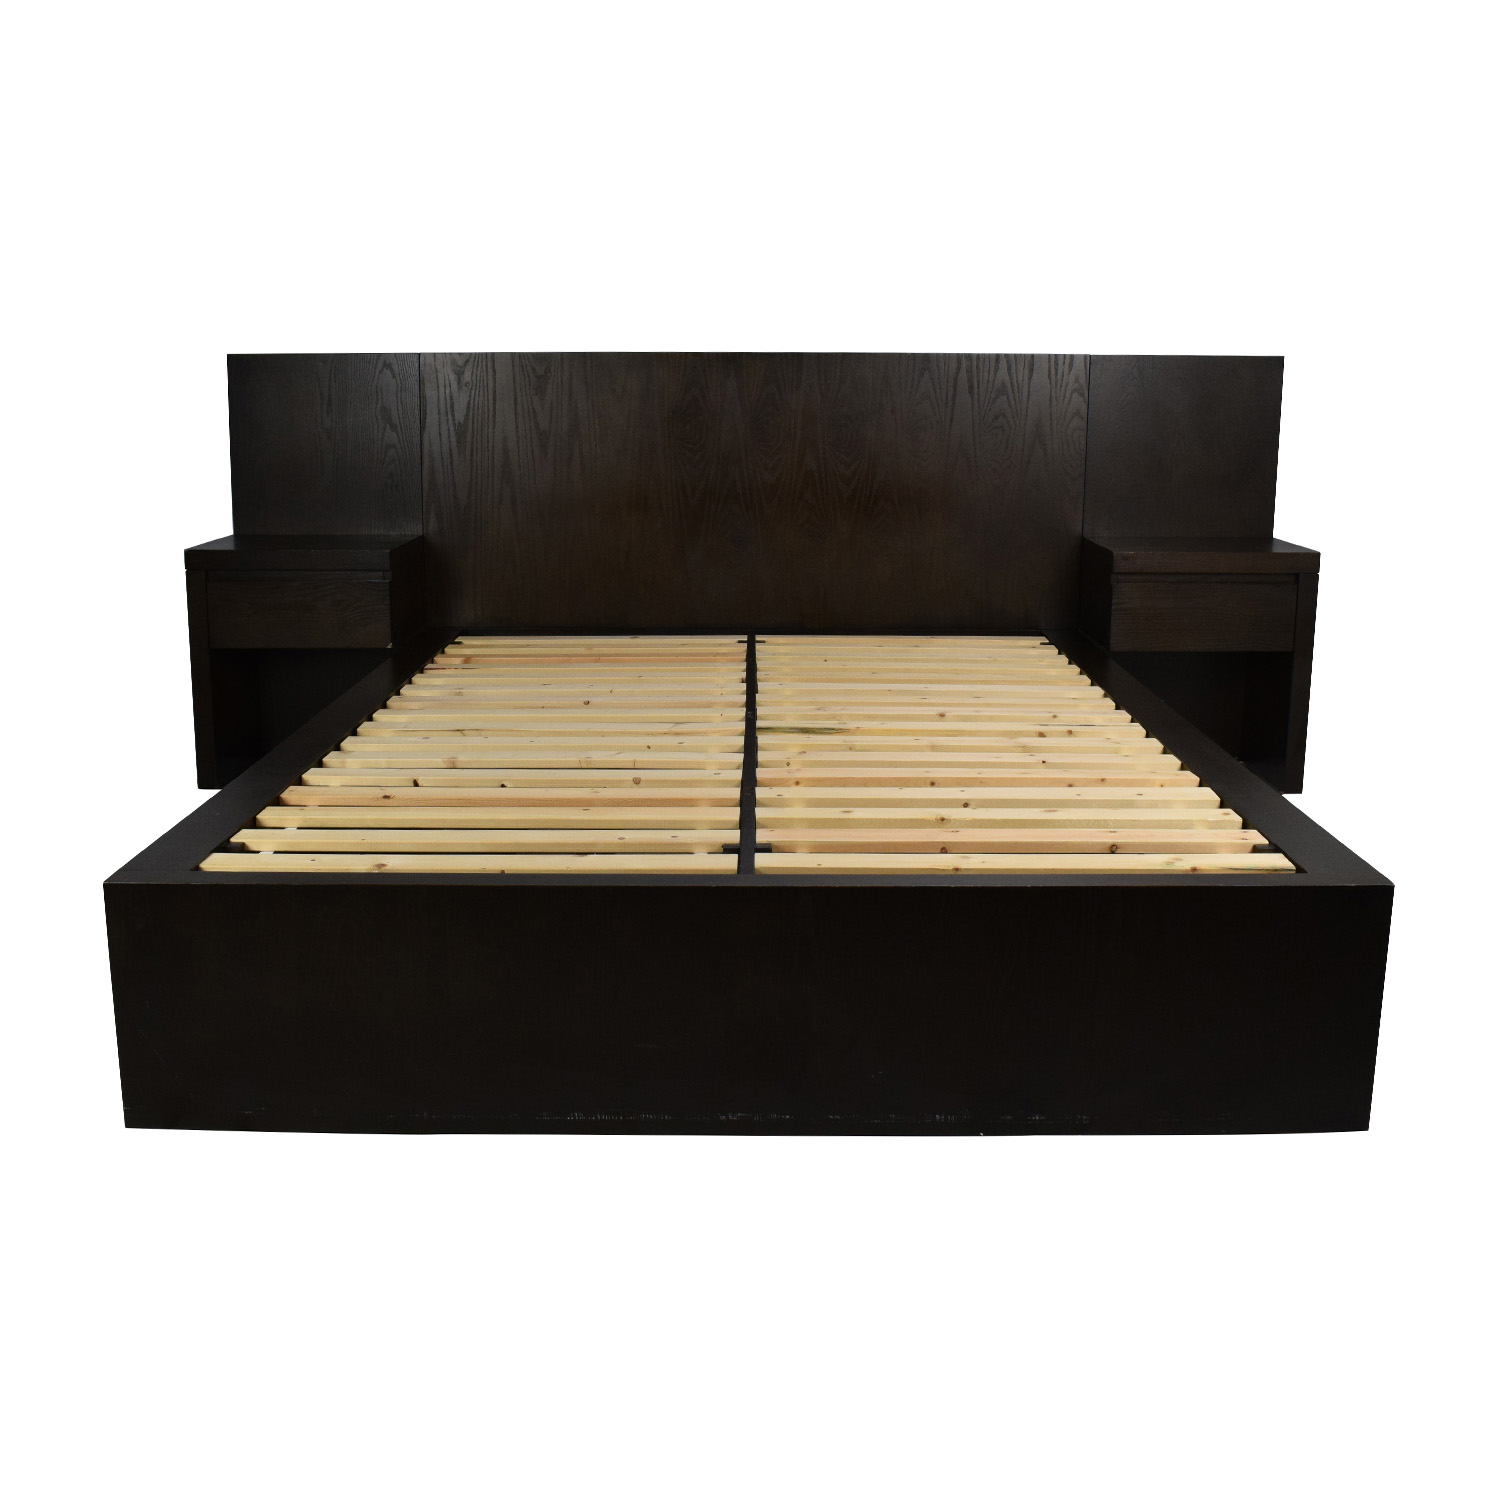 queen size platform bed frame with storage west elm queen size storage platform bed frame / beds MEGBQMI